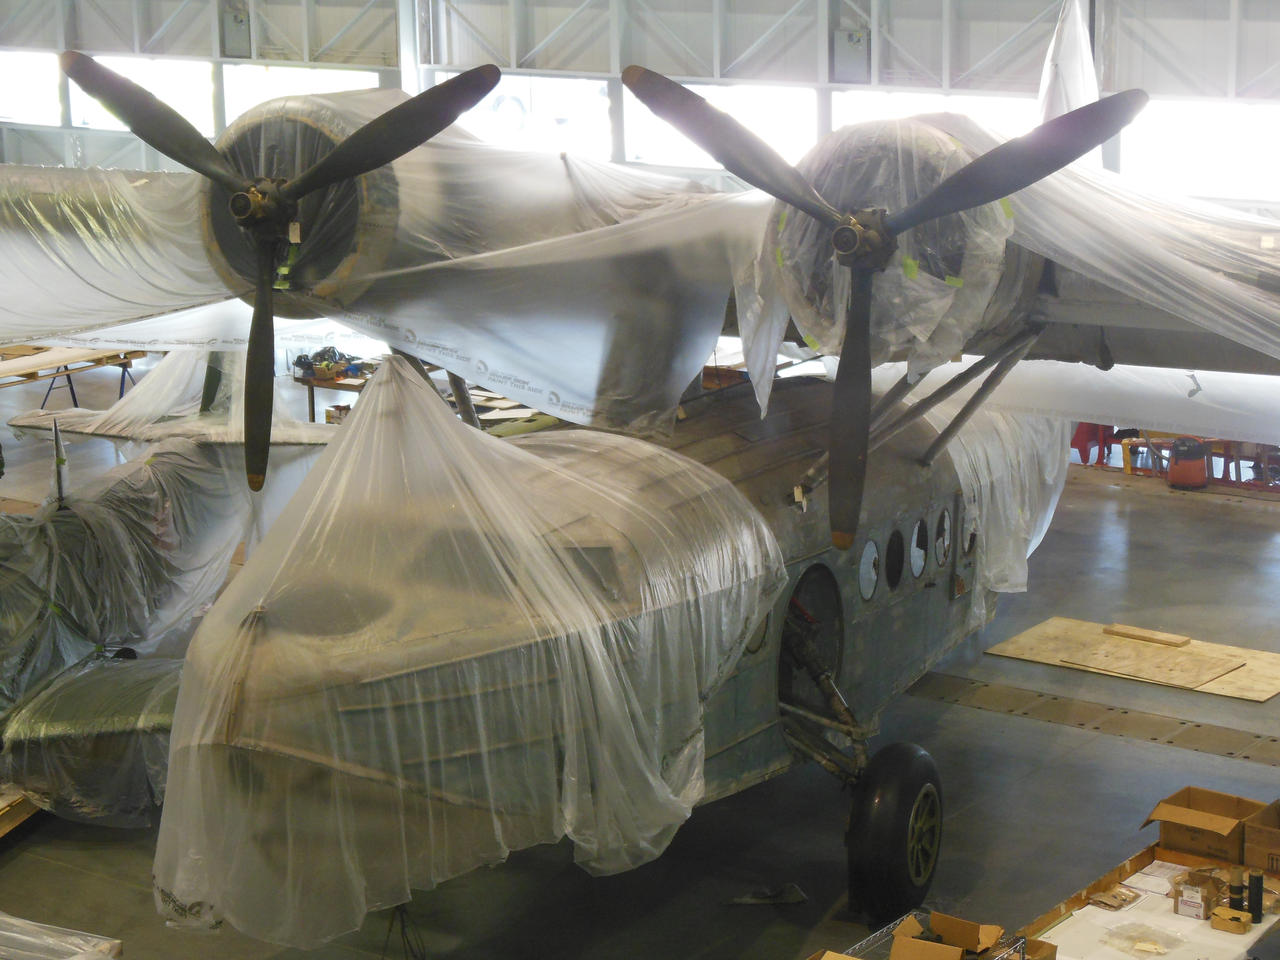 Sikorsky JRS-1 Flying Boat Restoration by rlkitterman